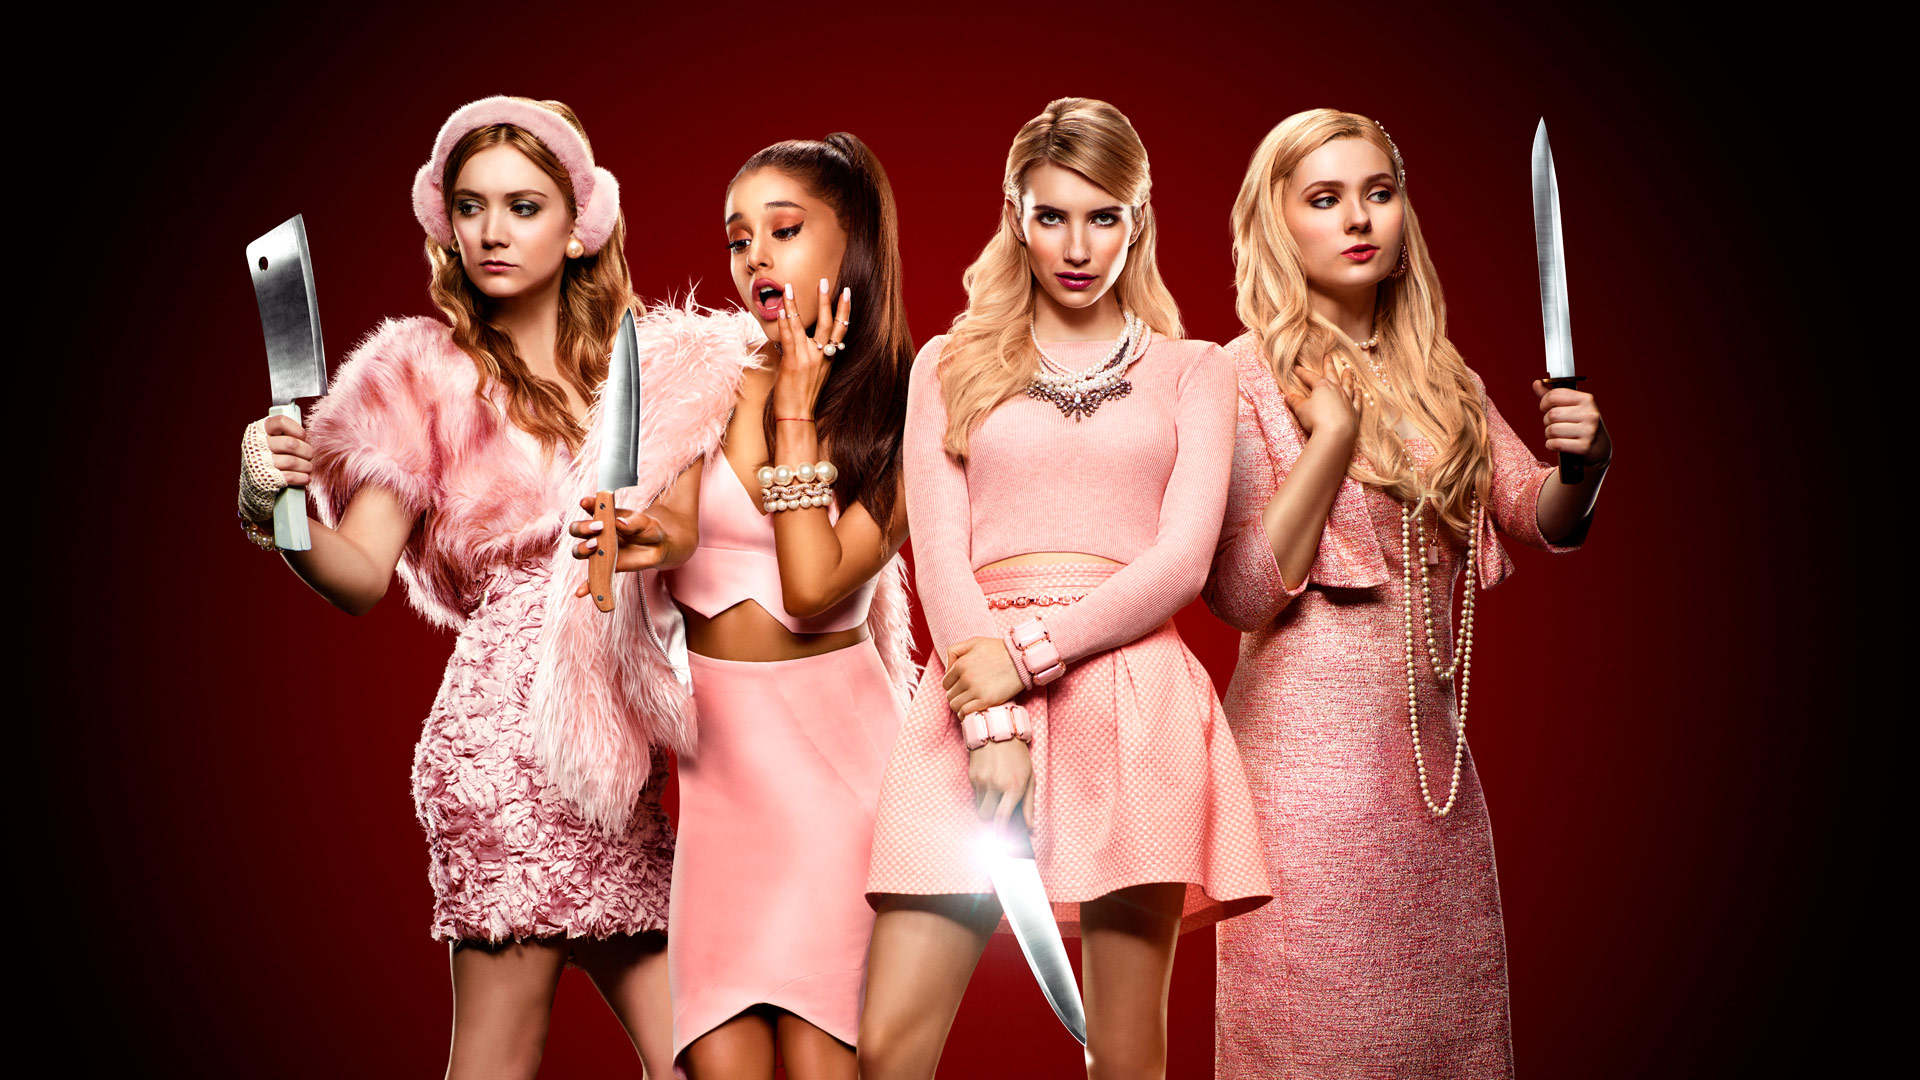 scream-queens-2015-55e6961b40a49